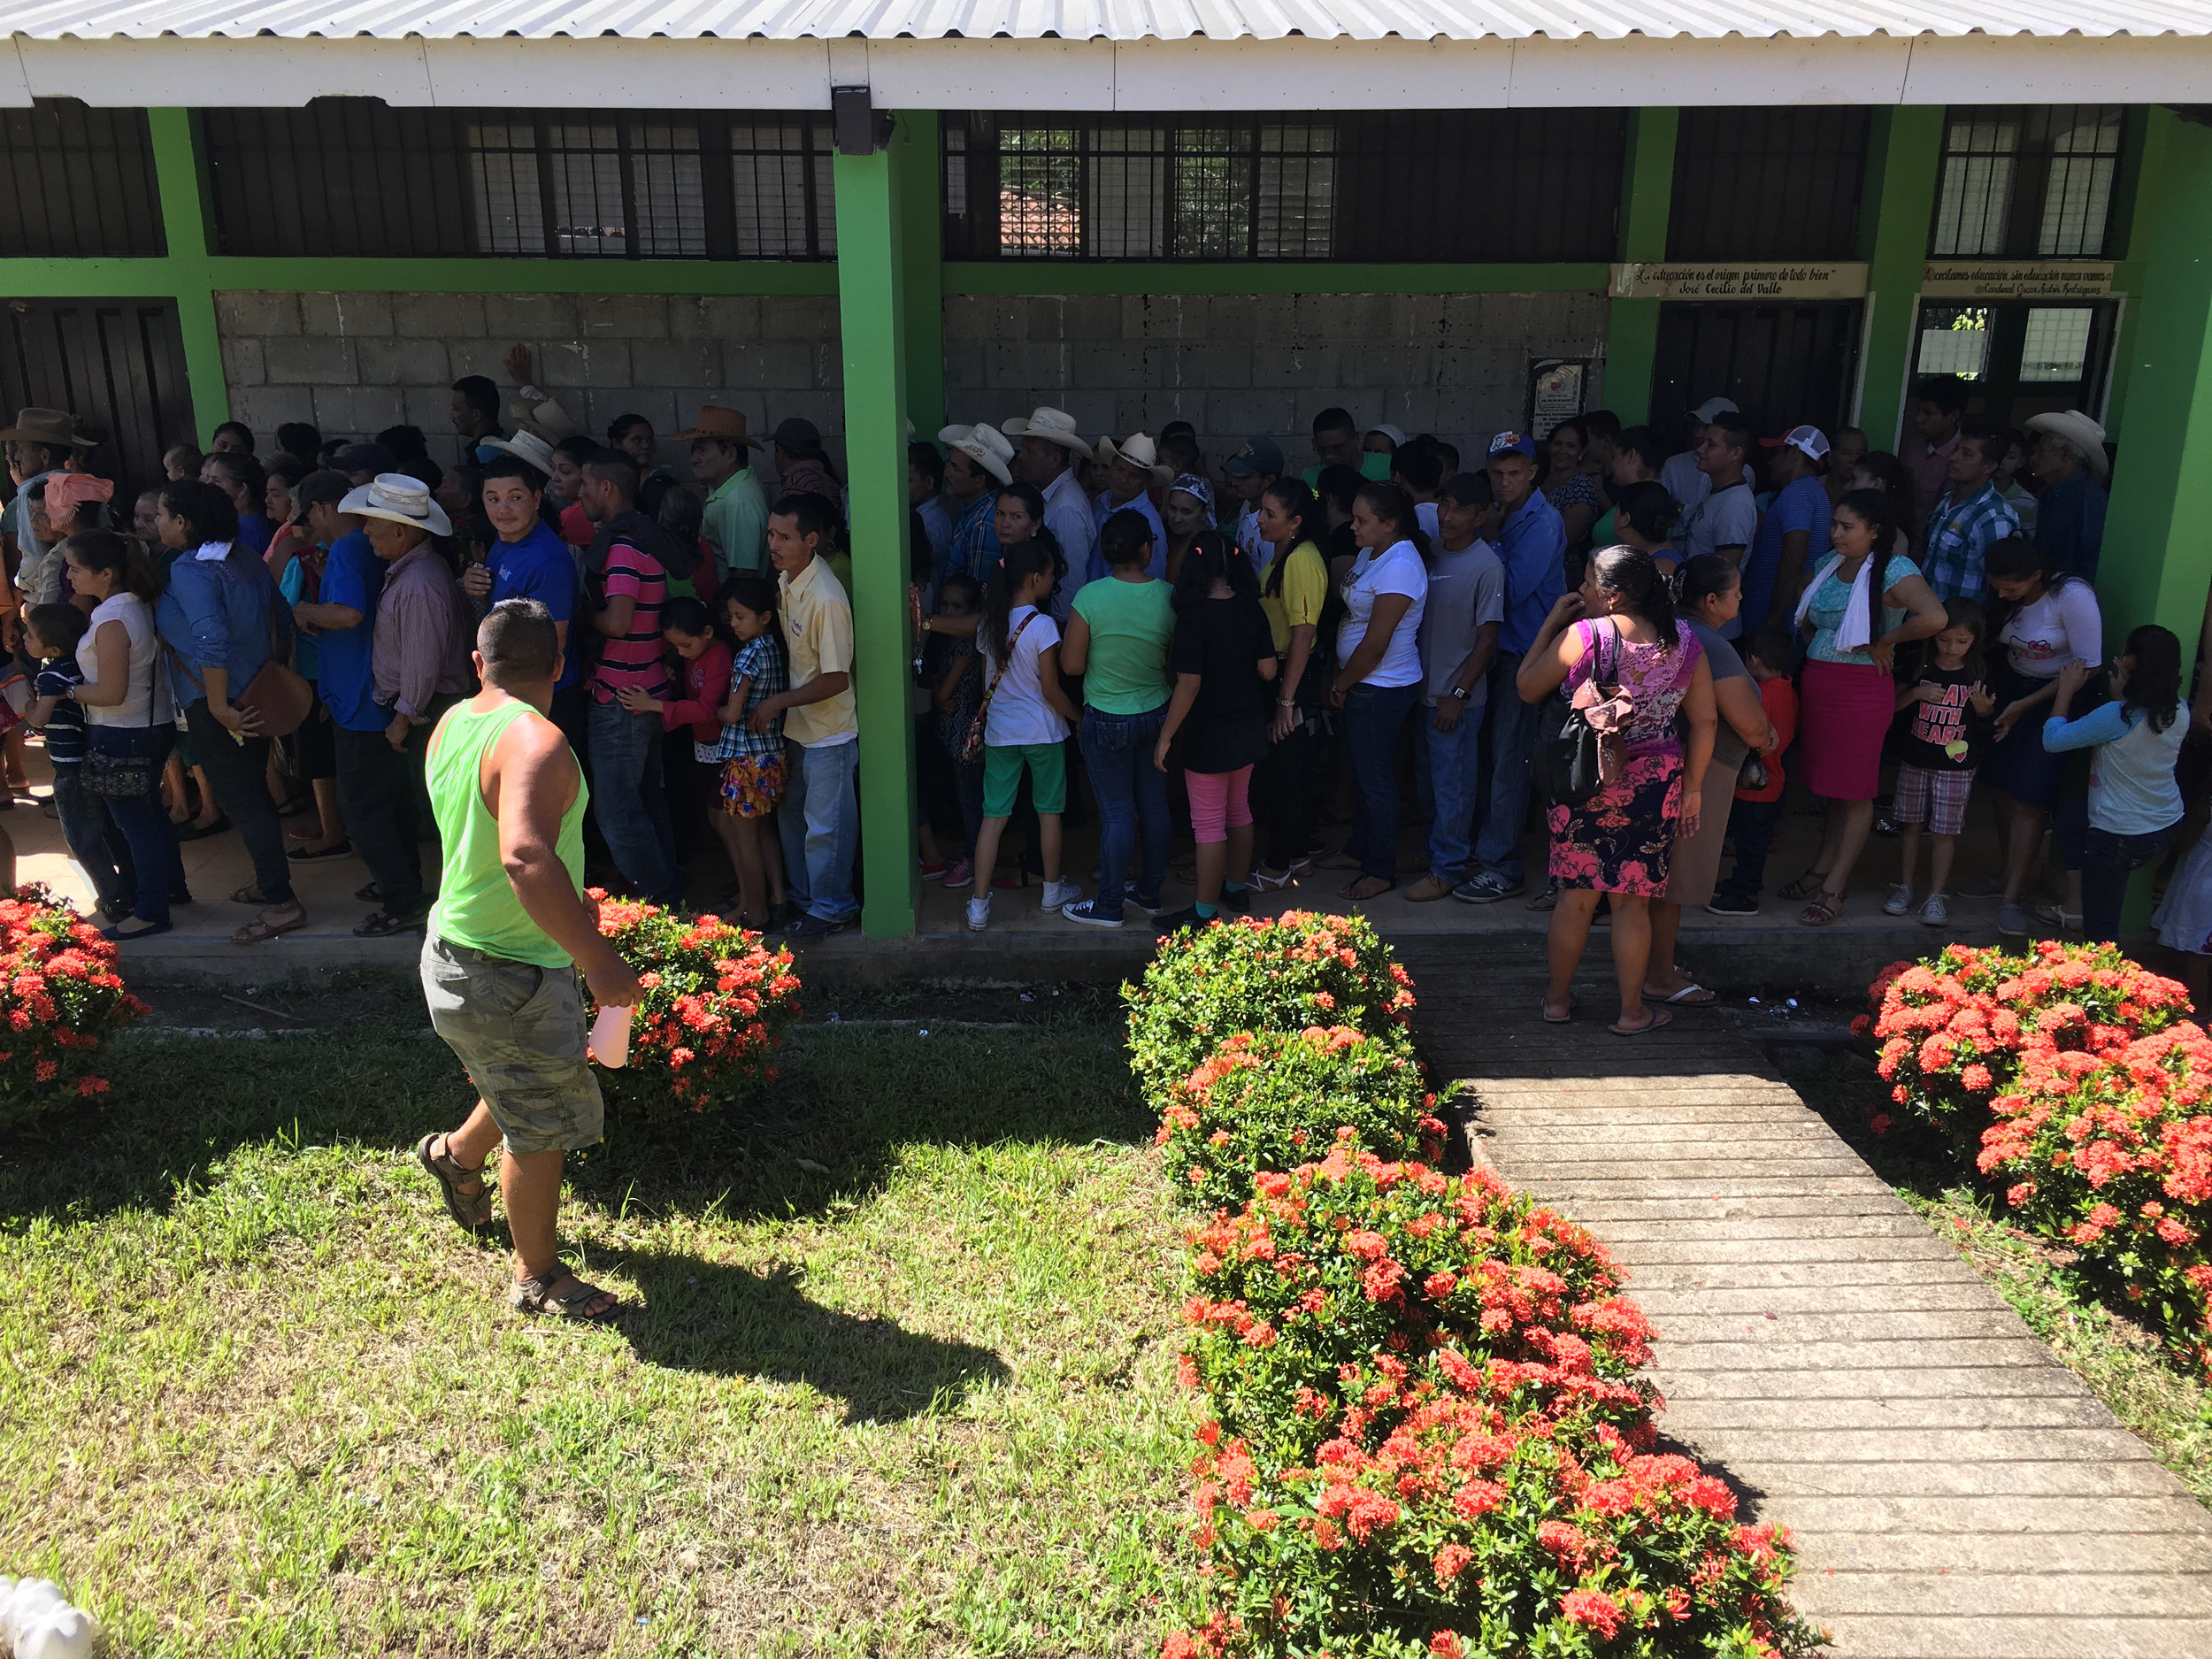 People line up for medical care Honduras 2017